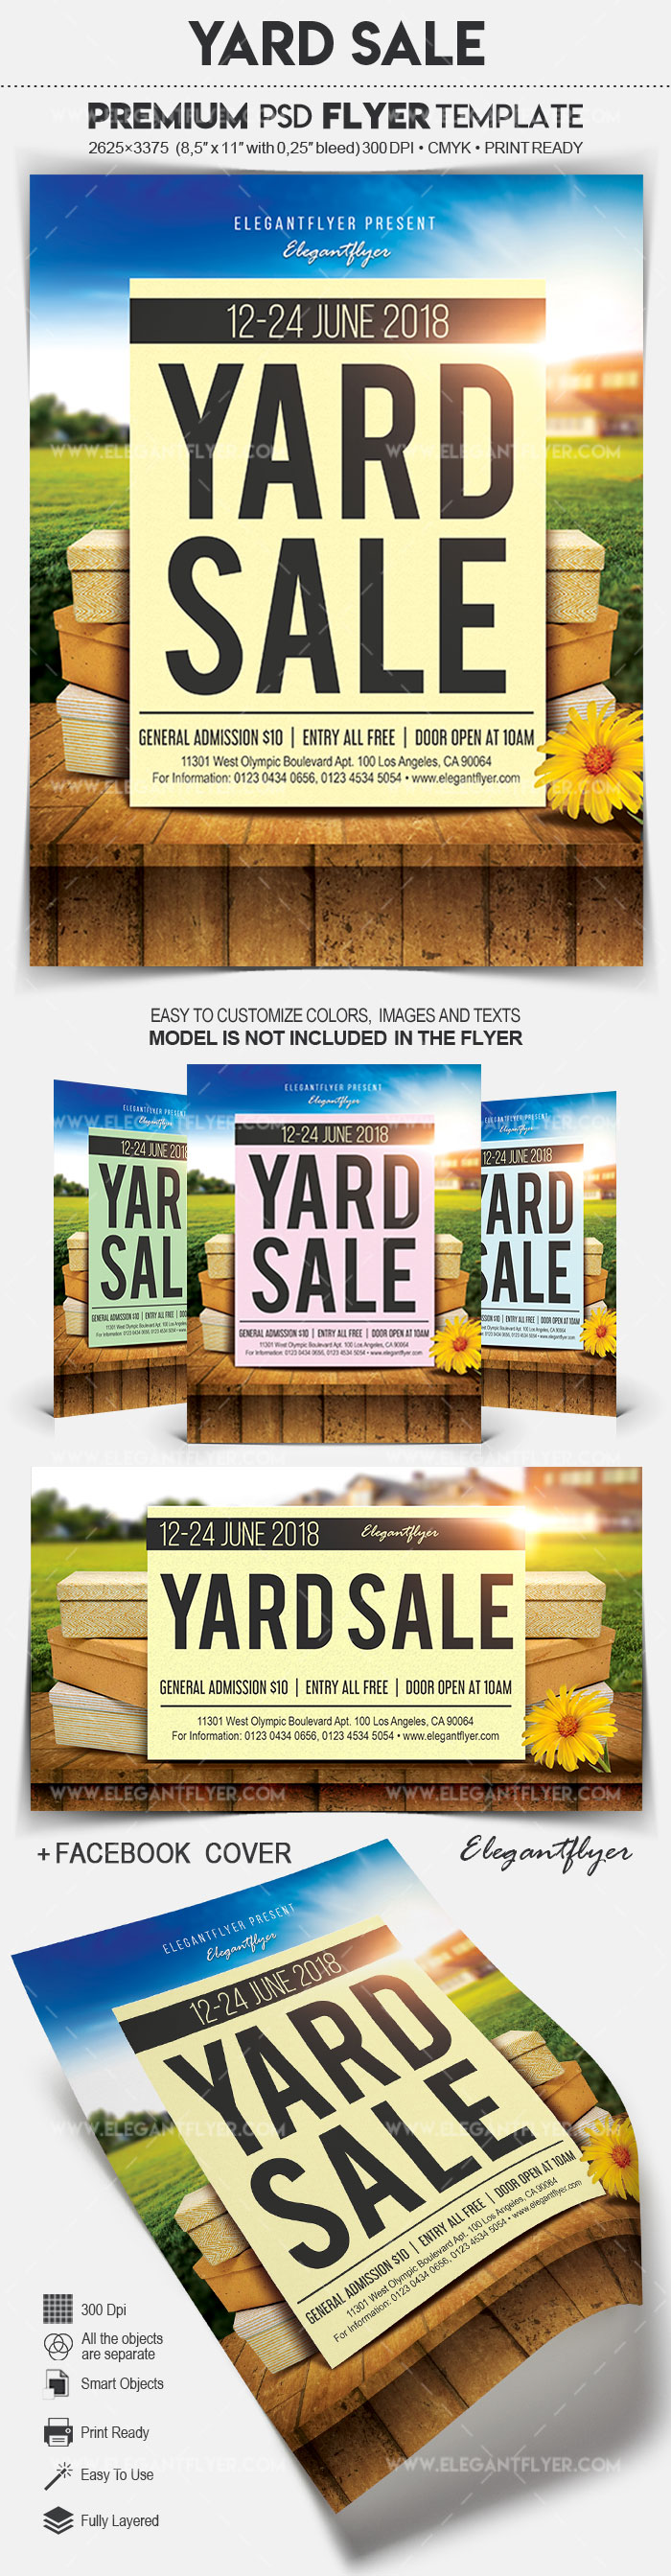 Flyer for Yard Sale in PSD